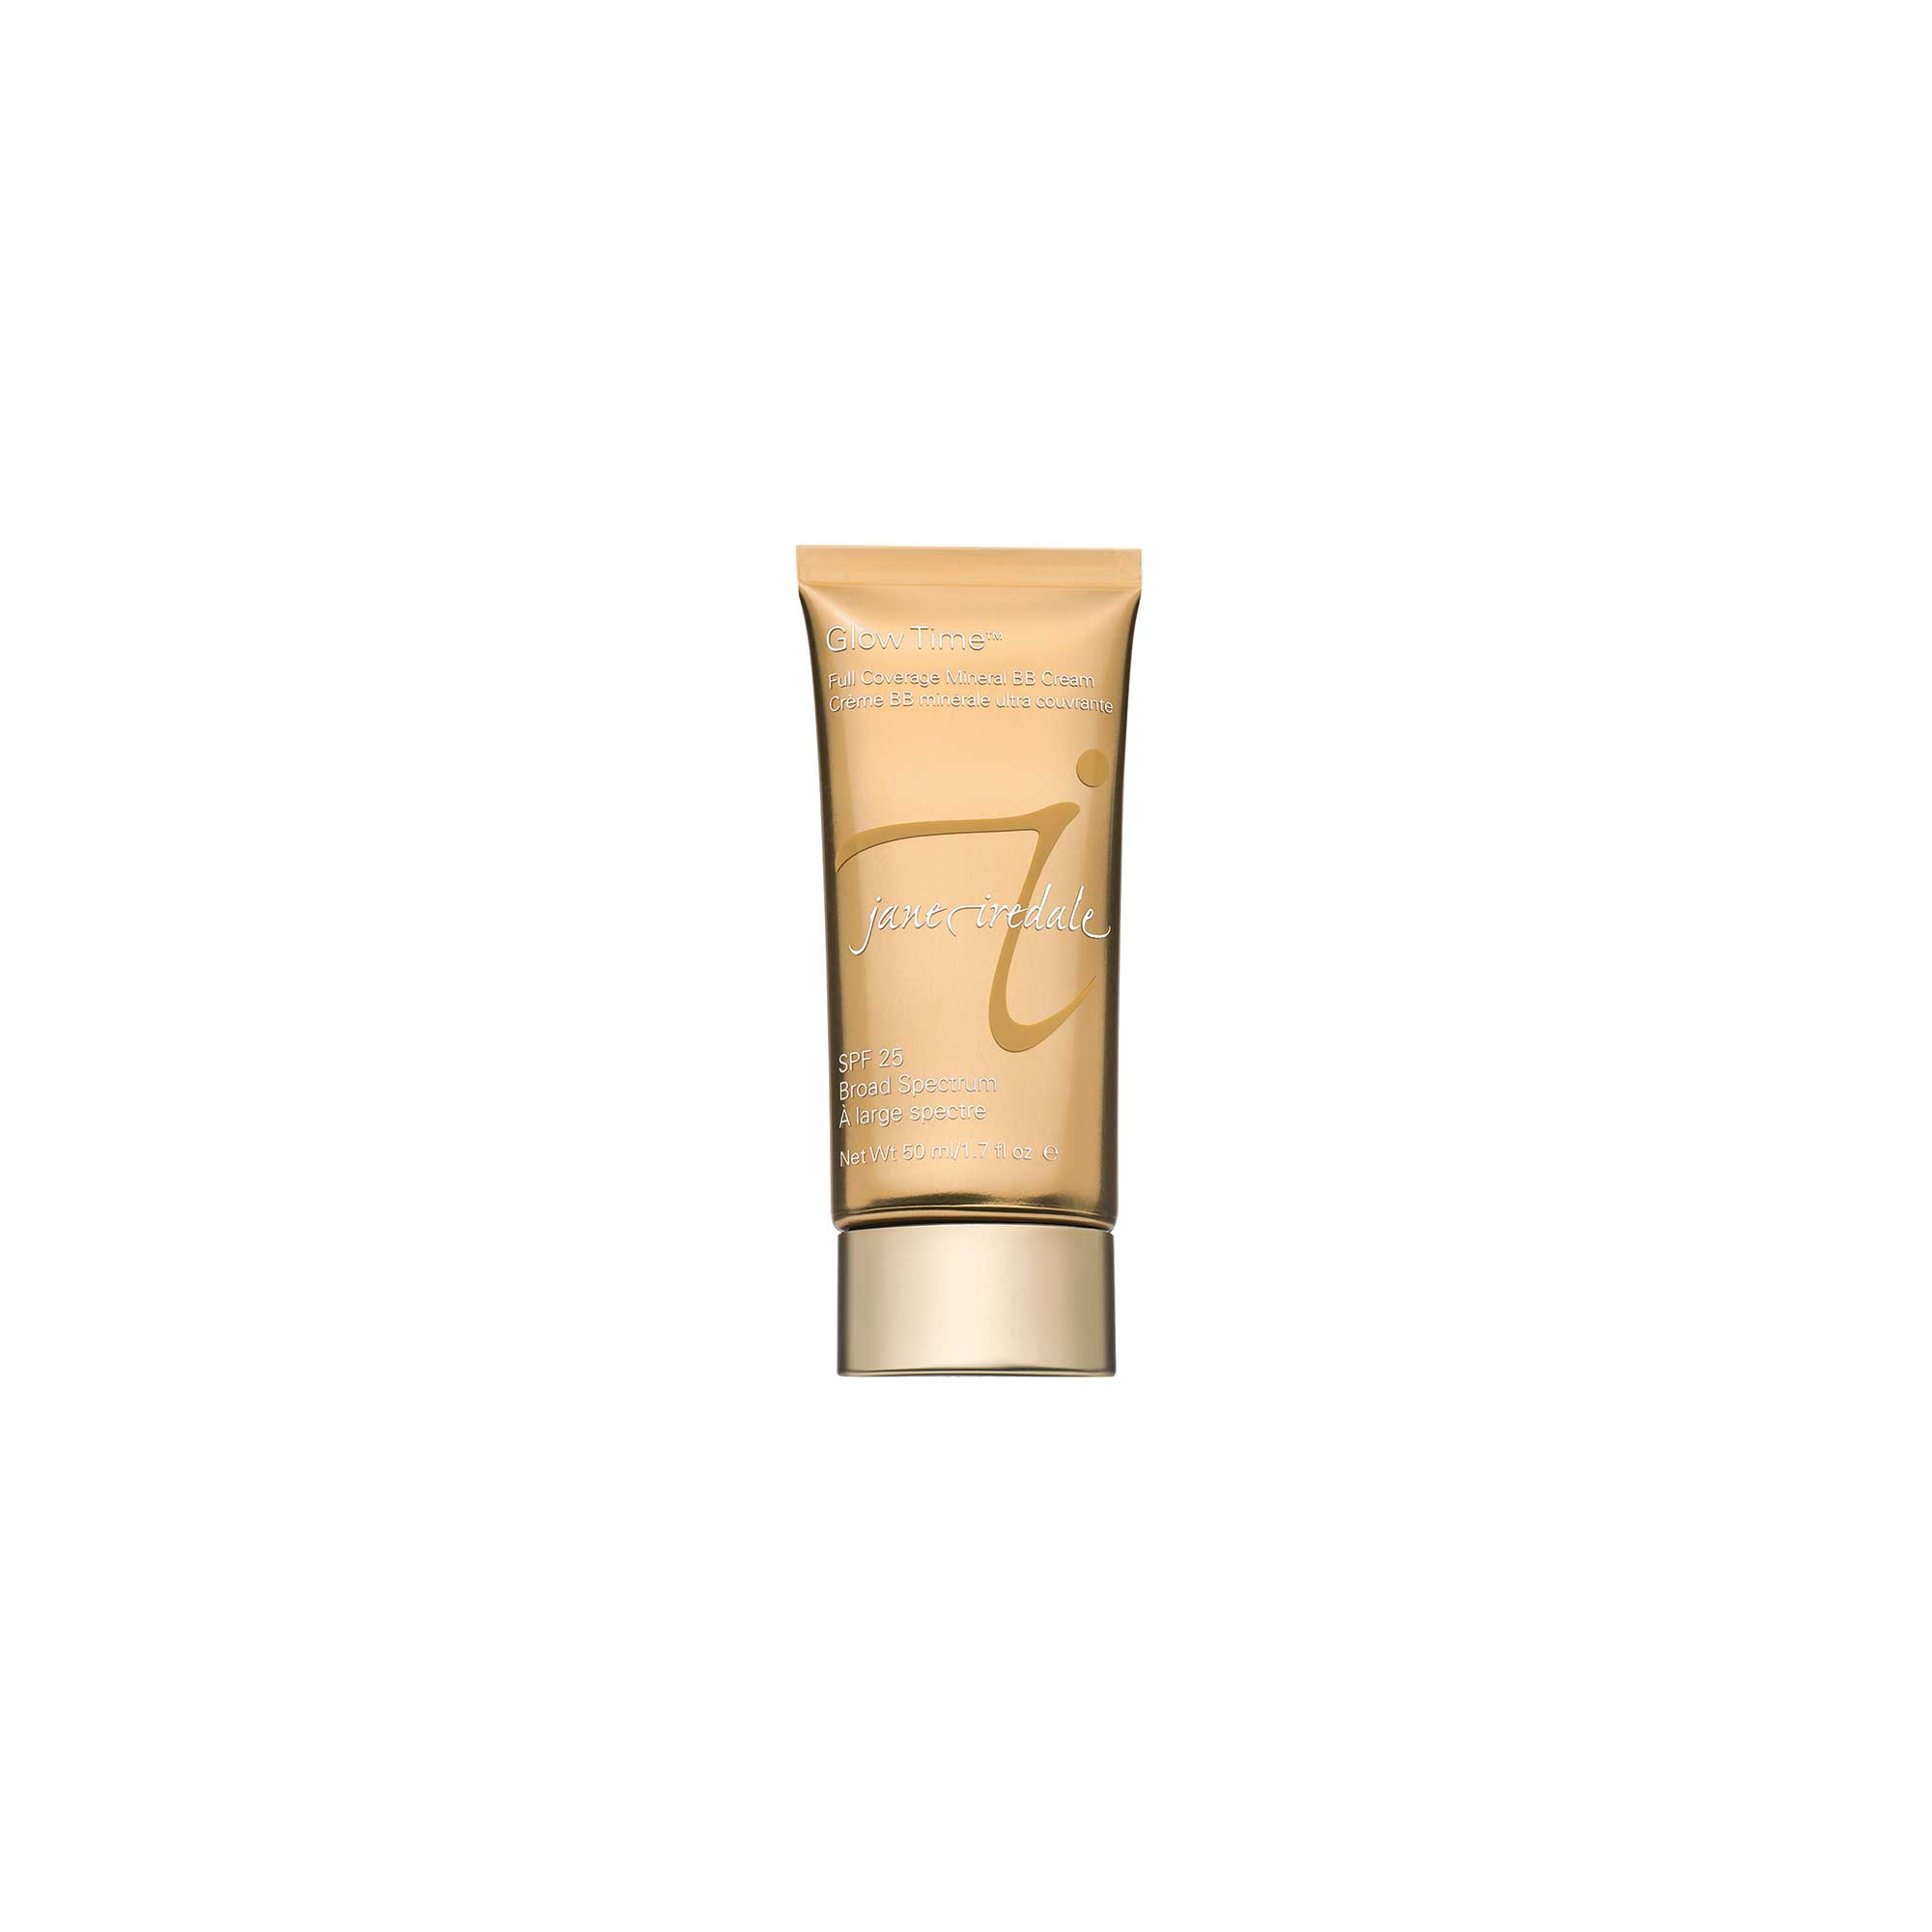 Glow Time Mineral full coverage mineral BB Cream (50 ml)